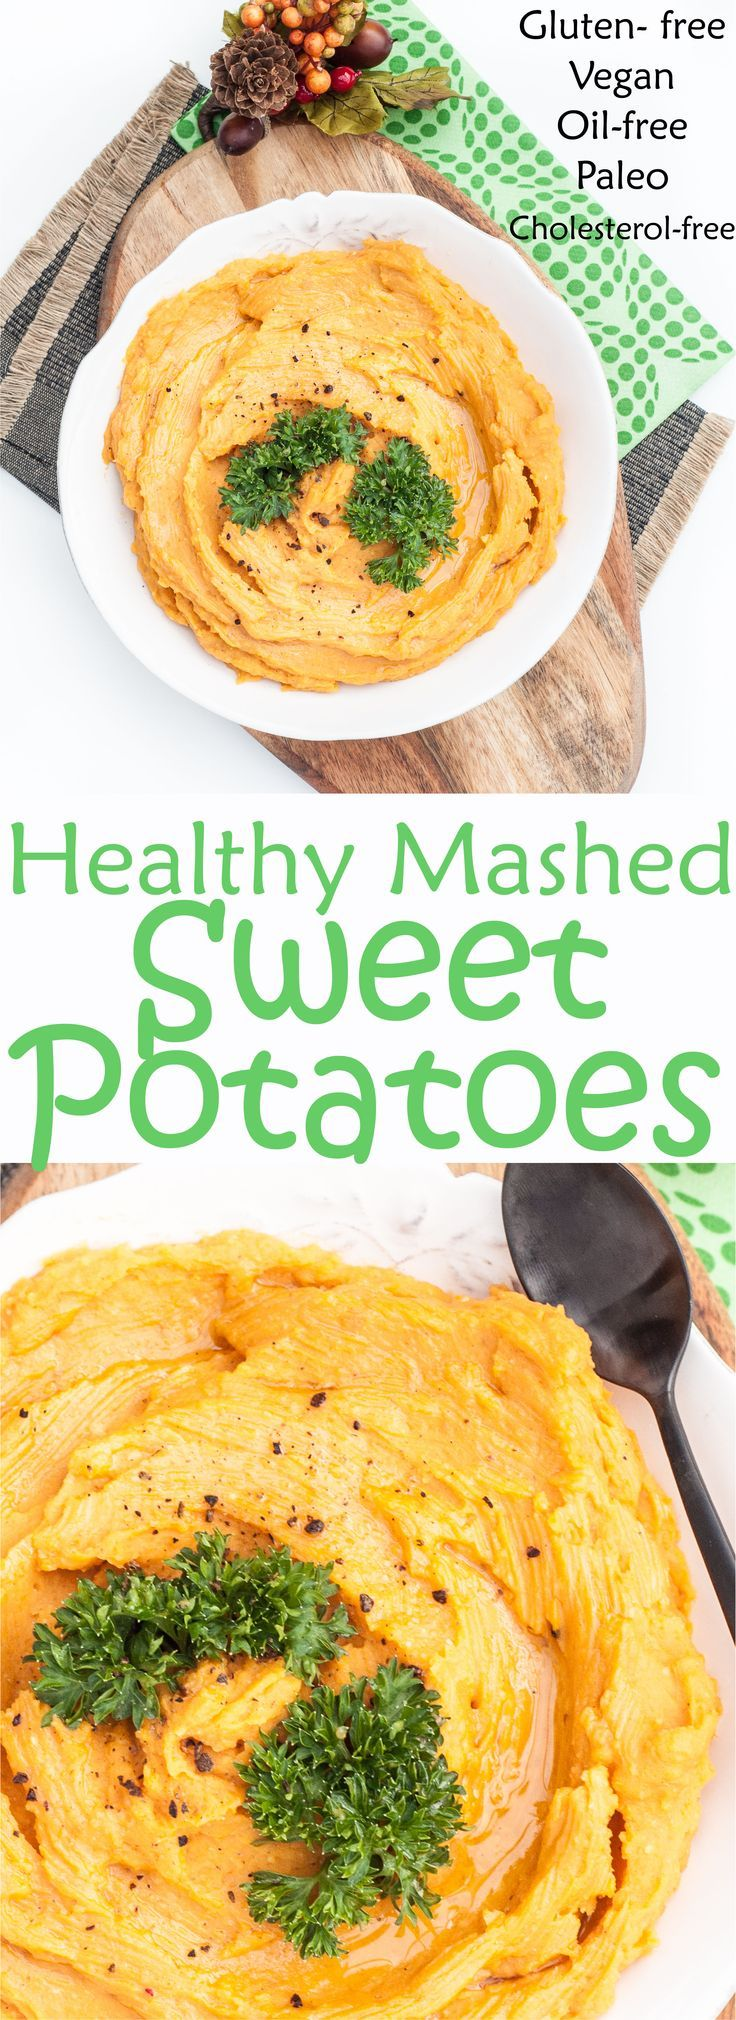 Healthy Mashed Sweet Potatoes Recipe. These mashed sweet potatoes will blow regular mashed potatoes out of the water! Very healthy, vegan, gluten-free, paleo, and without any butter and dairy-free! | http://VeganFamilyRecipes.com | #glutenfree #vegetarian #oil-free